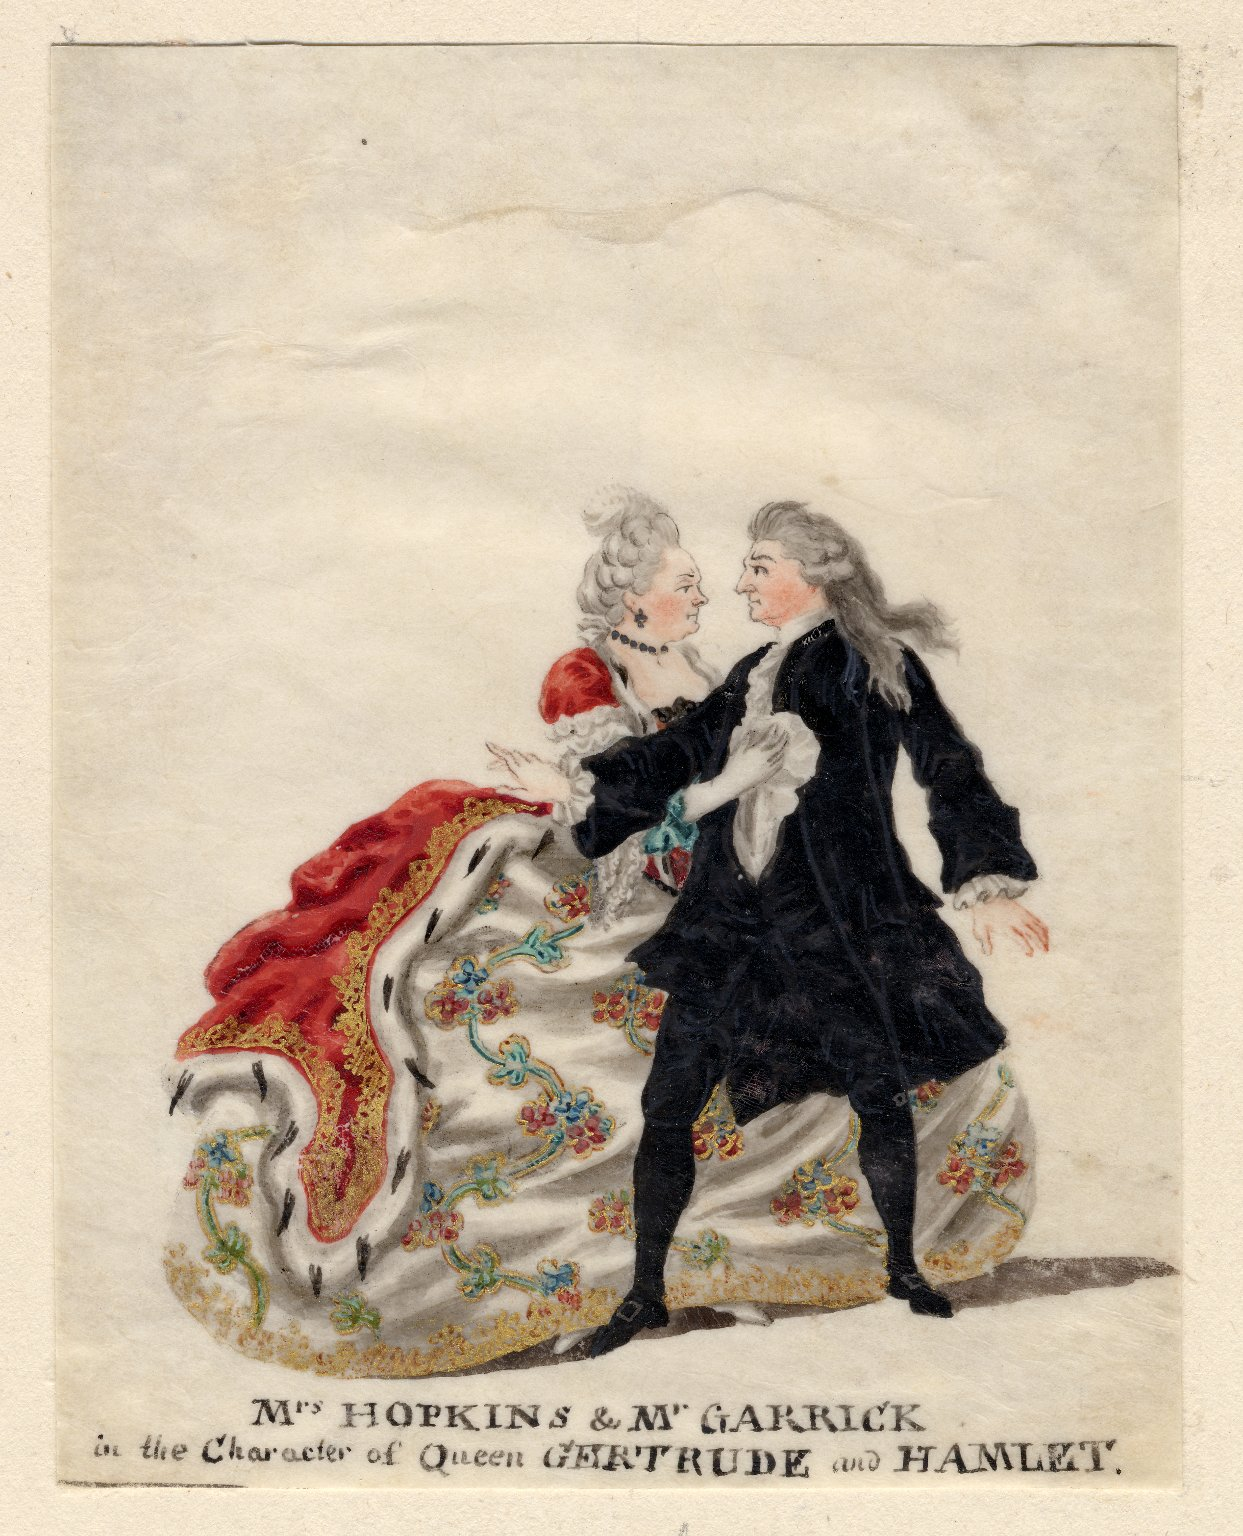 Garrick and his contemporaries